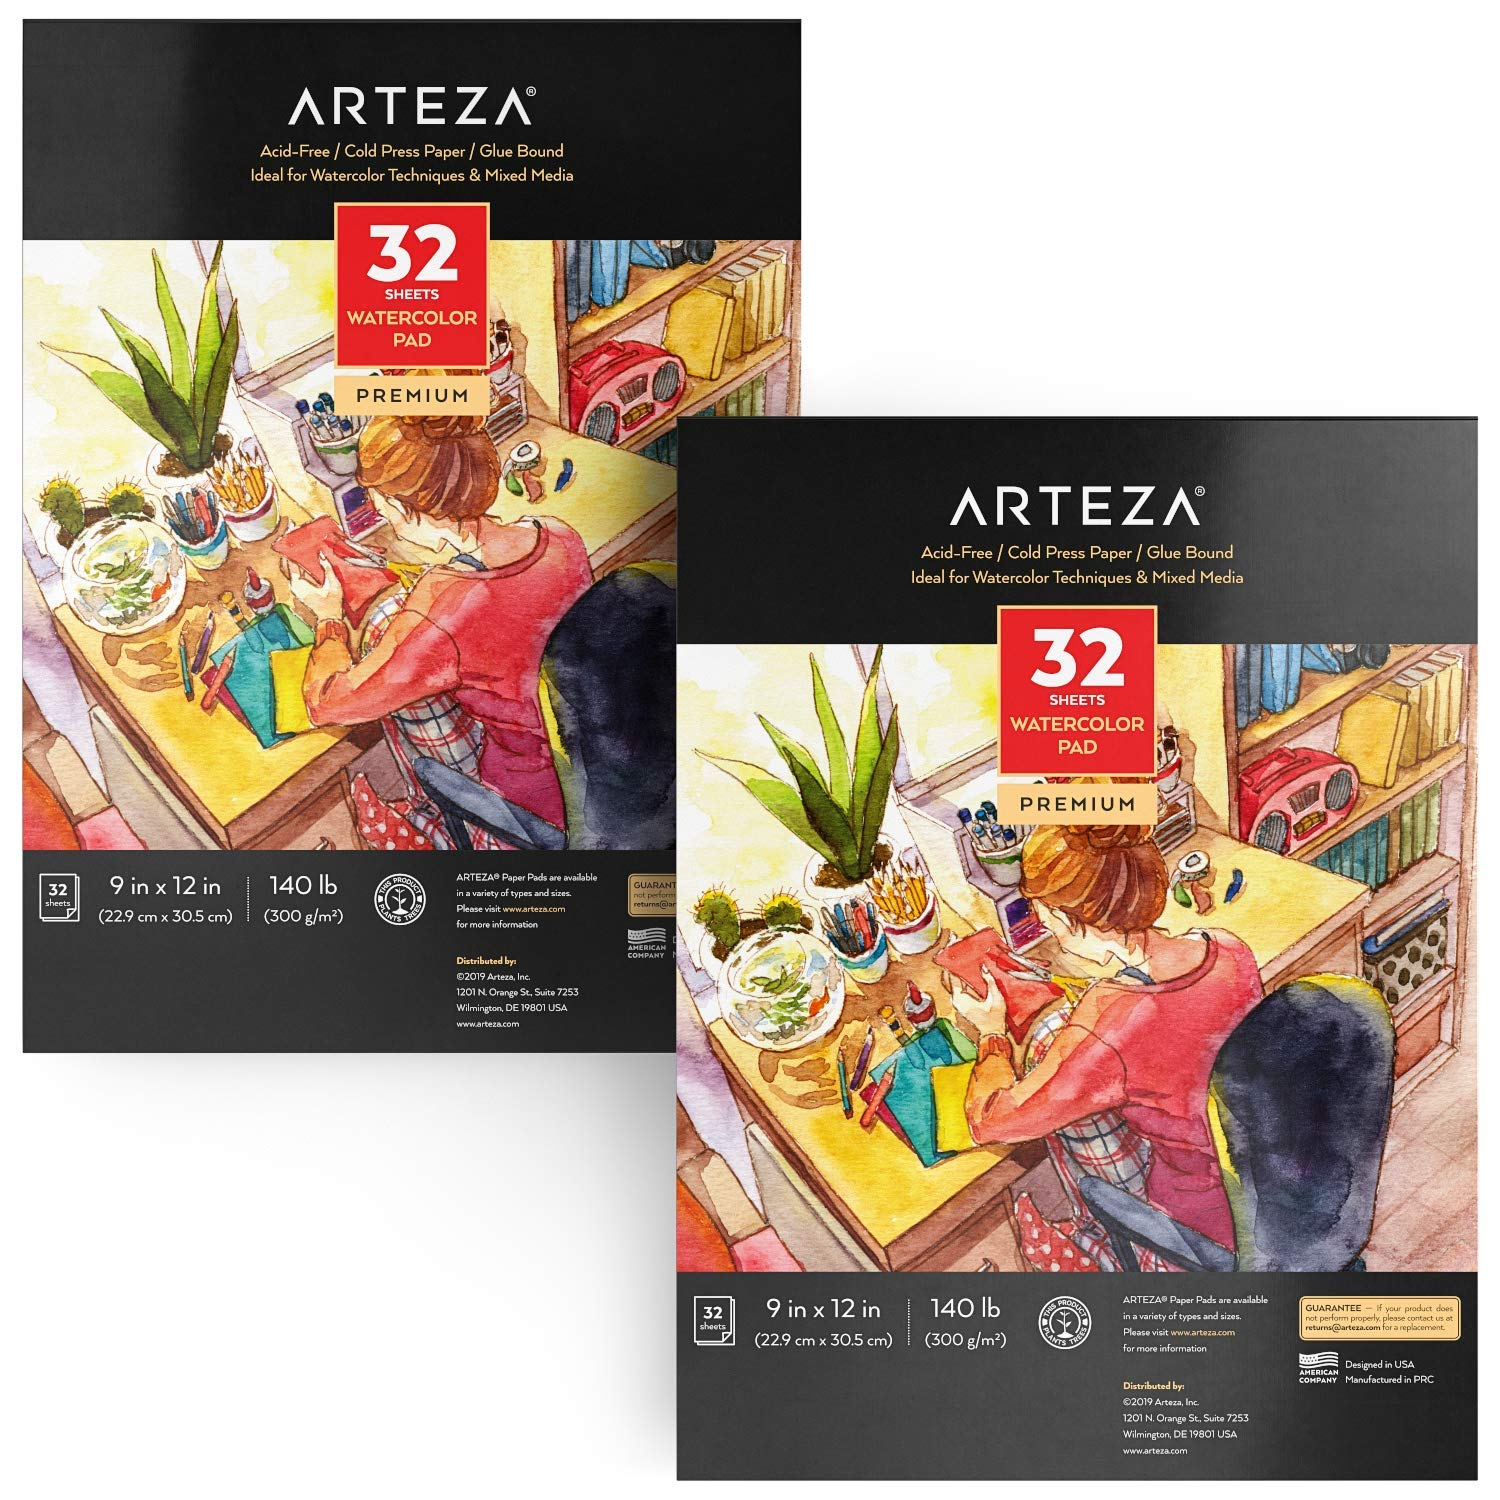 ARTEZA Watercolor Paper 9x12 Inch, Pack of 2, 64 Sheets (140lb/300gsm), Cold Pressed Art Sketchbook Pad for Painting & Drawing, Wet, Mixed Media